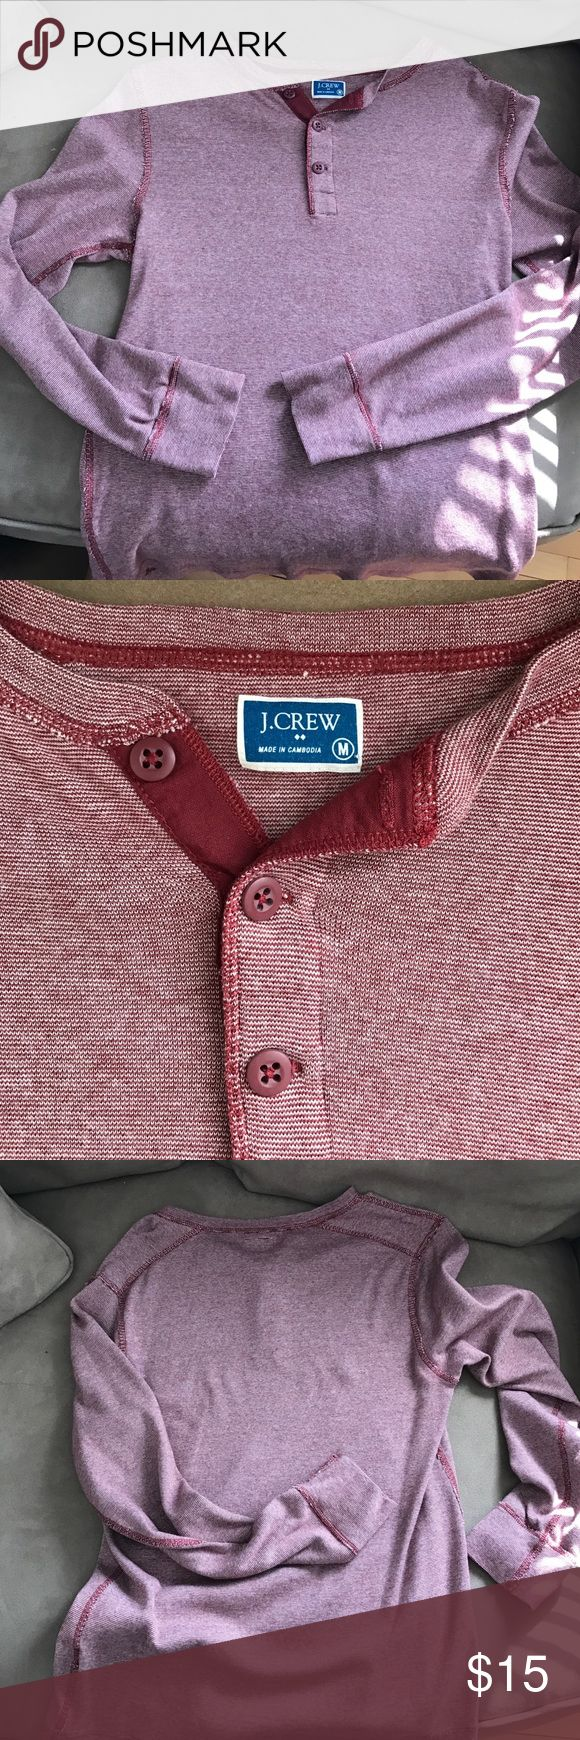 J Crew Men's Long Sleeve Henley - MEDIUM Long sleeved cotton Henley - worn and washed once. Perfect condition! J. Crew Shirts Tees - Long Sleeve